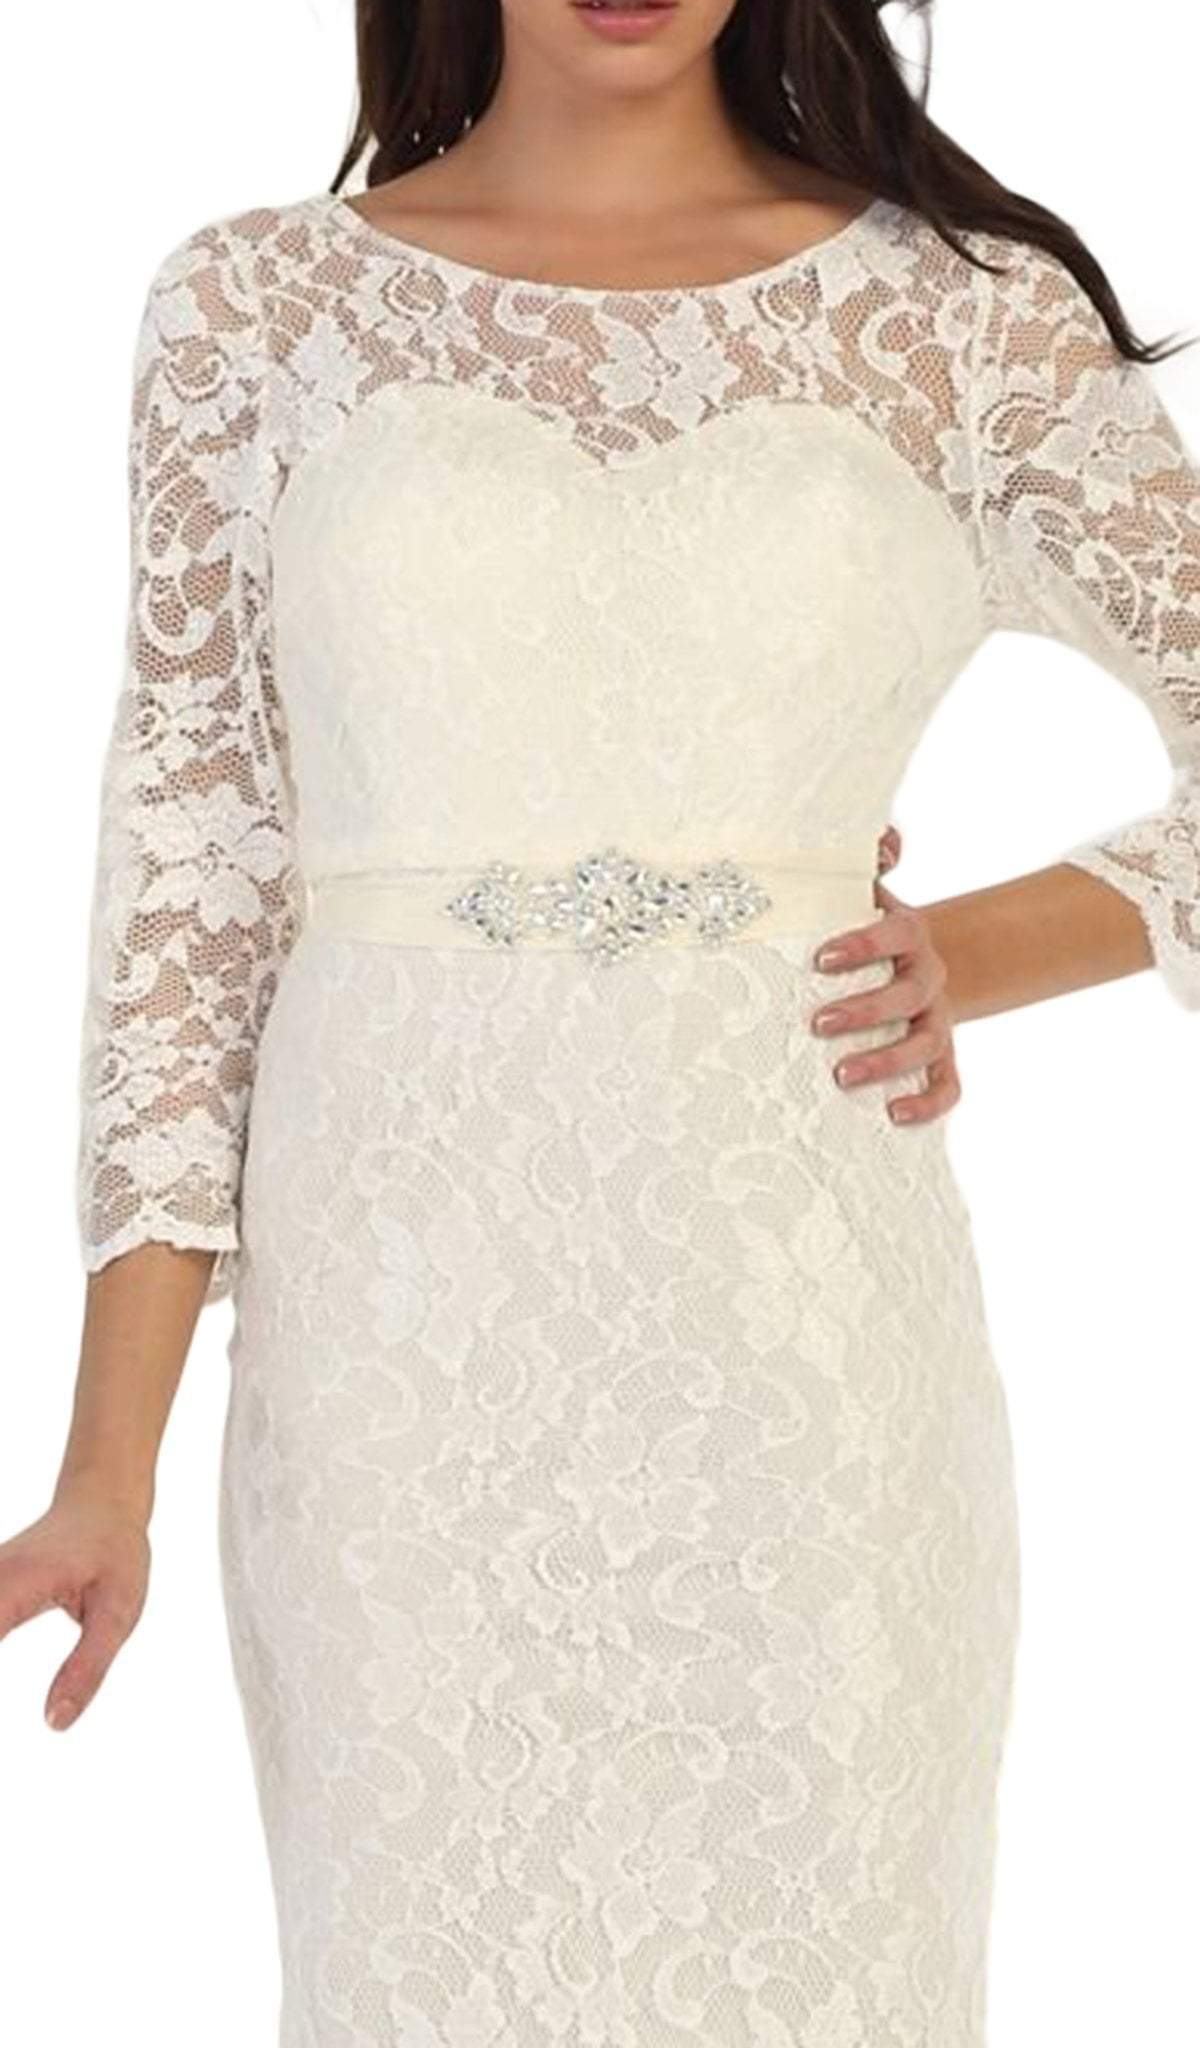 May Queen - MQ1454SC Lacey Quarter Sleeve Formal Long Dress